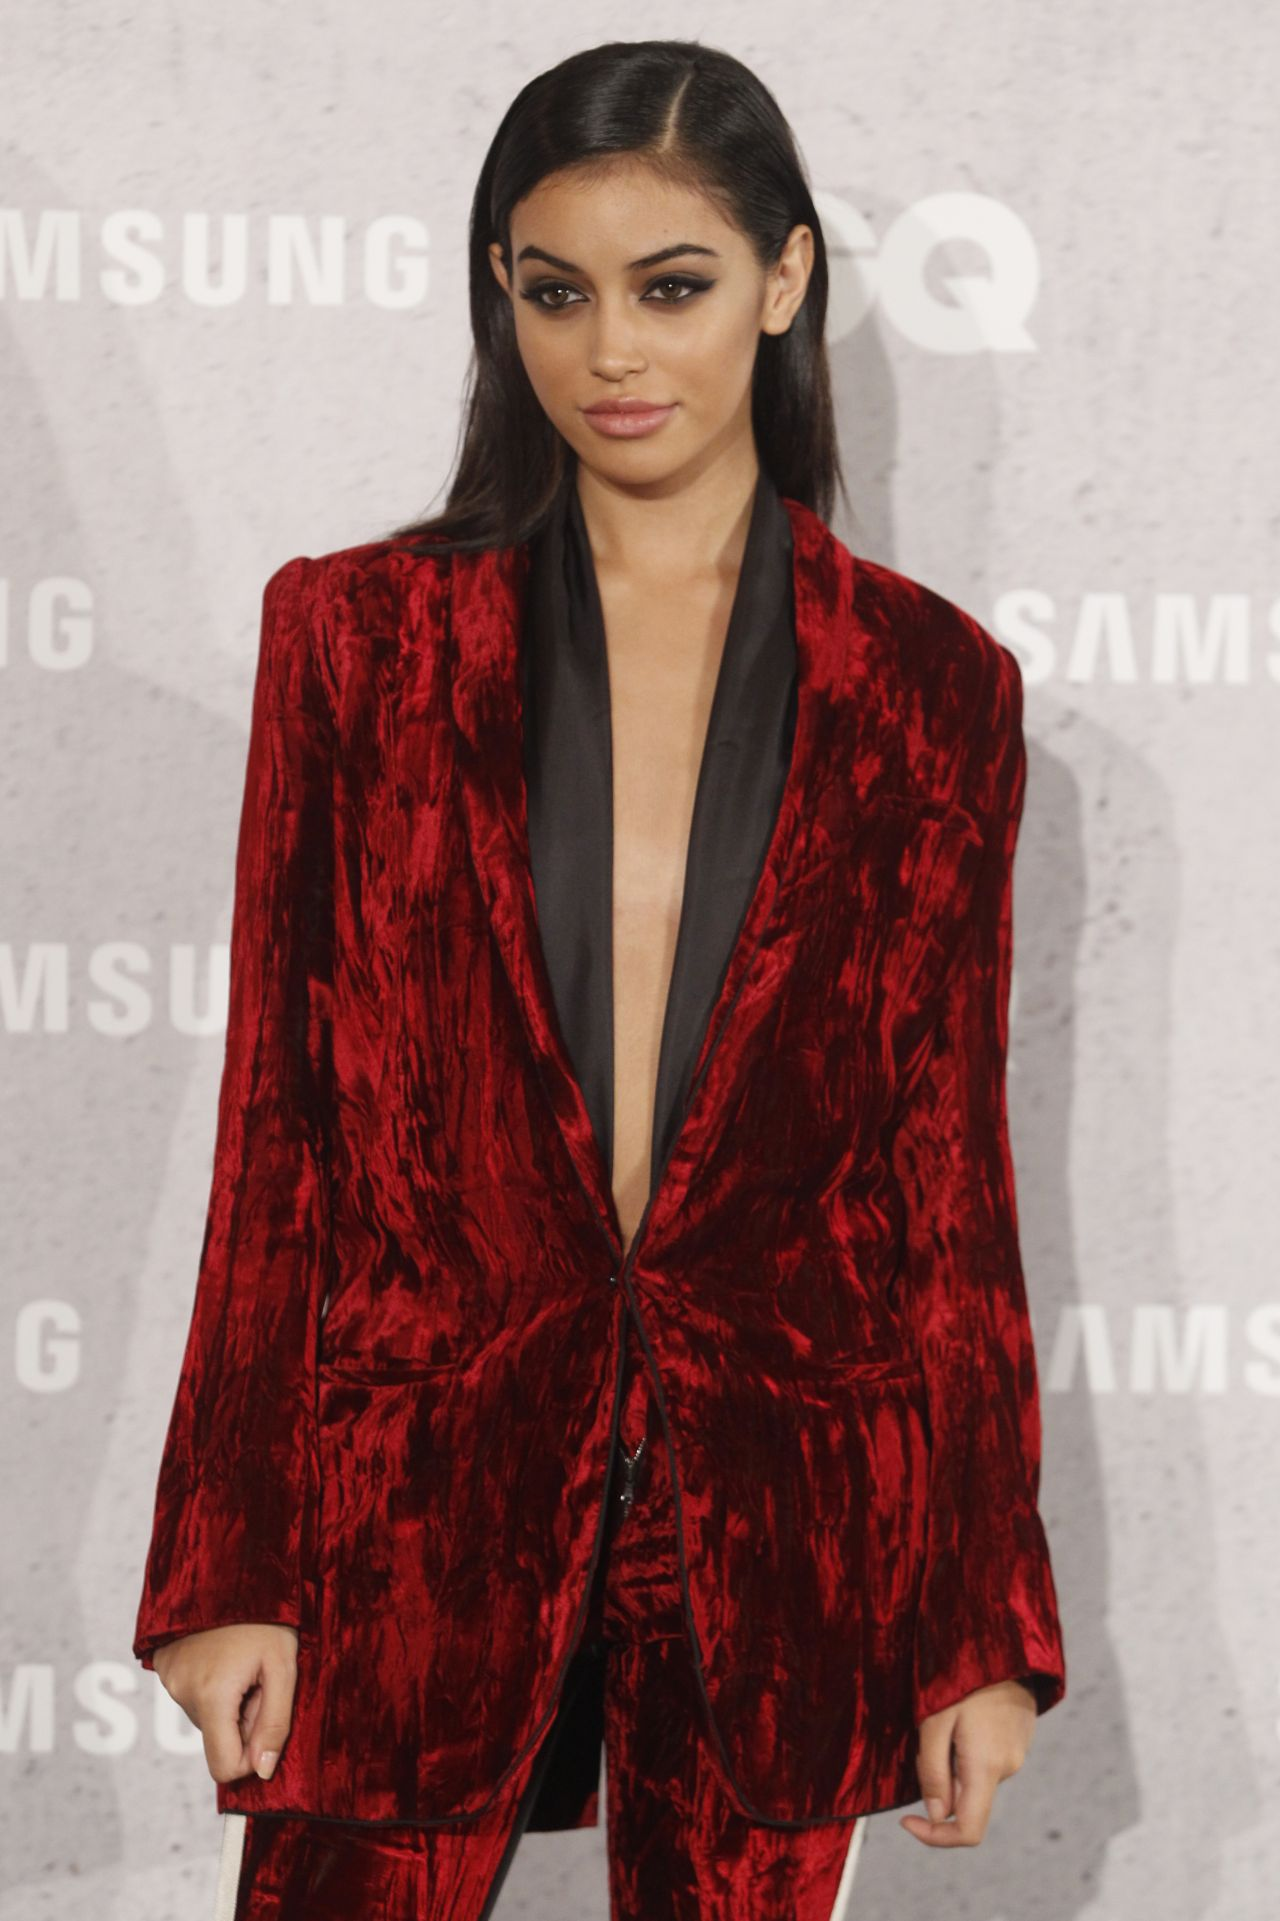 Cindy Kimberly Is Now A Model After Justin Bieber Became